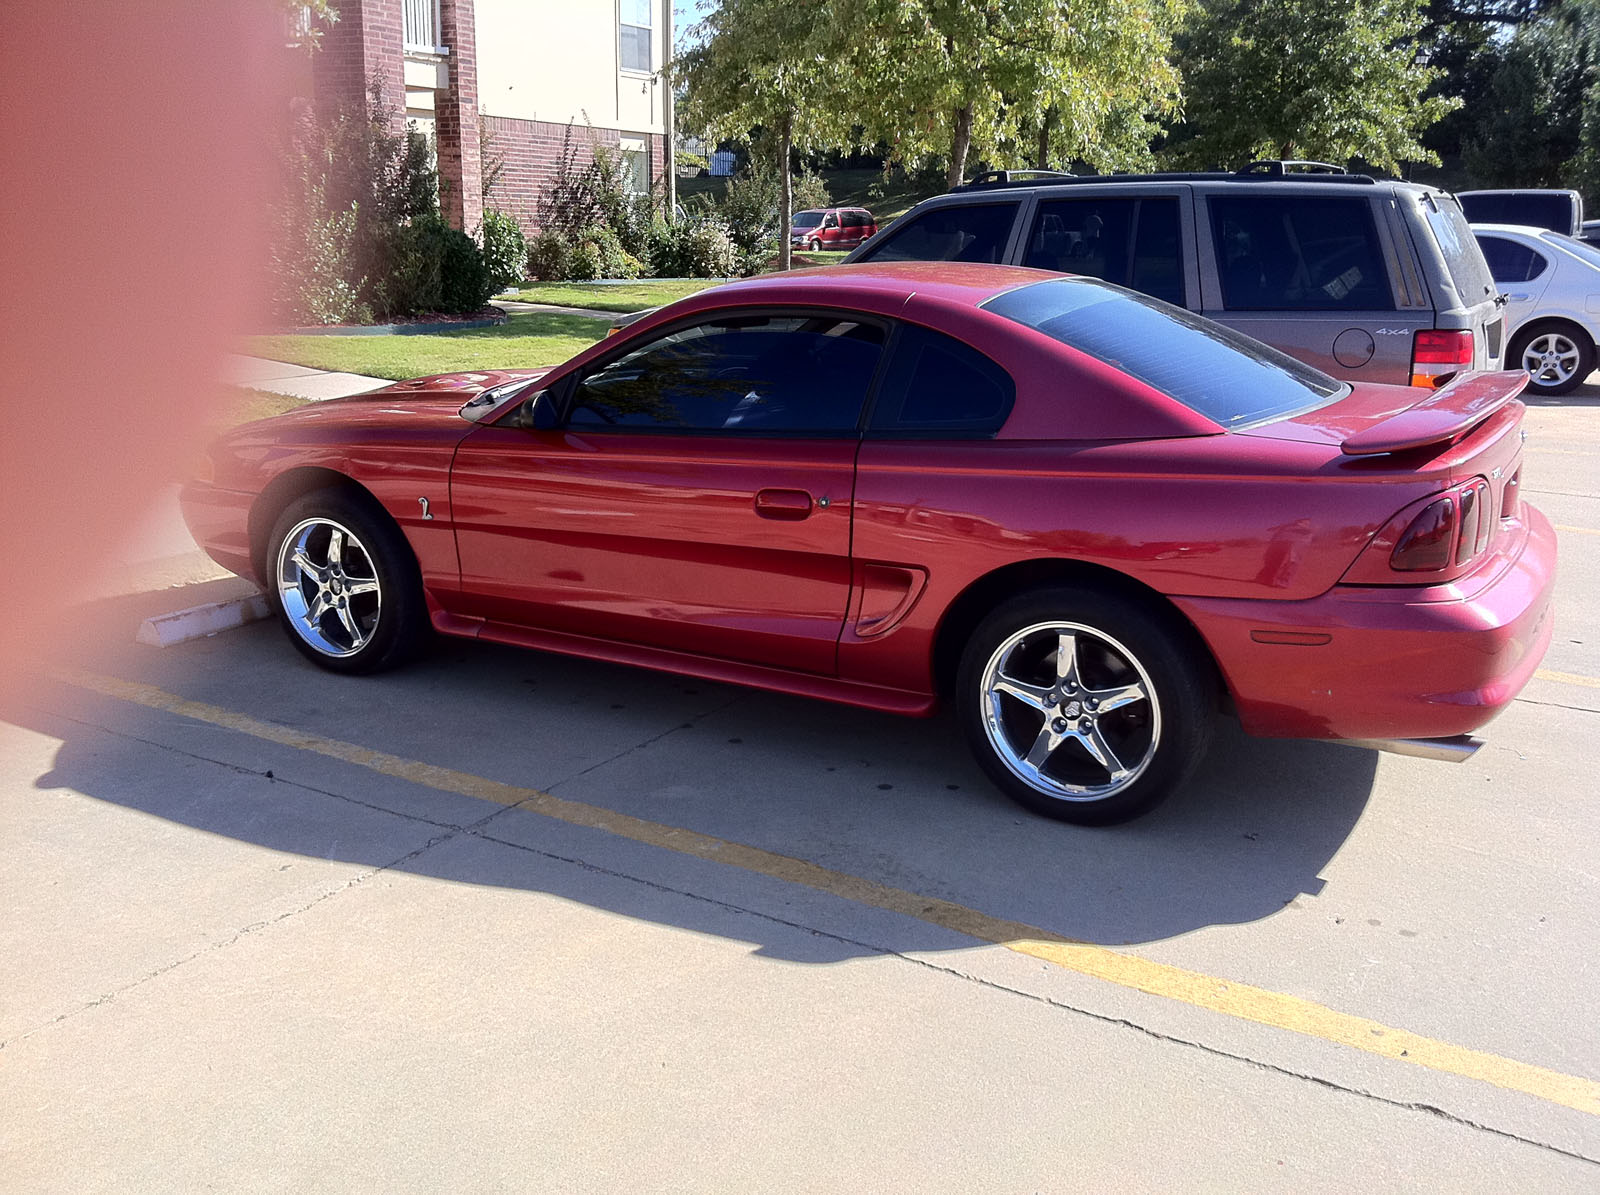 1996 Ford Mustang #14